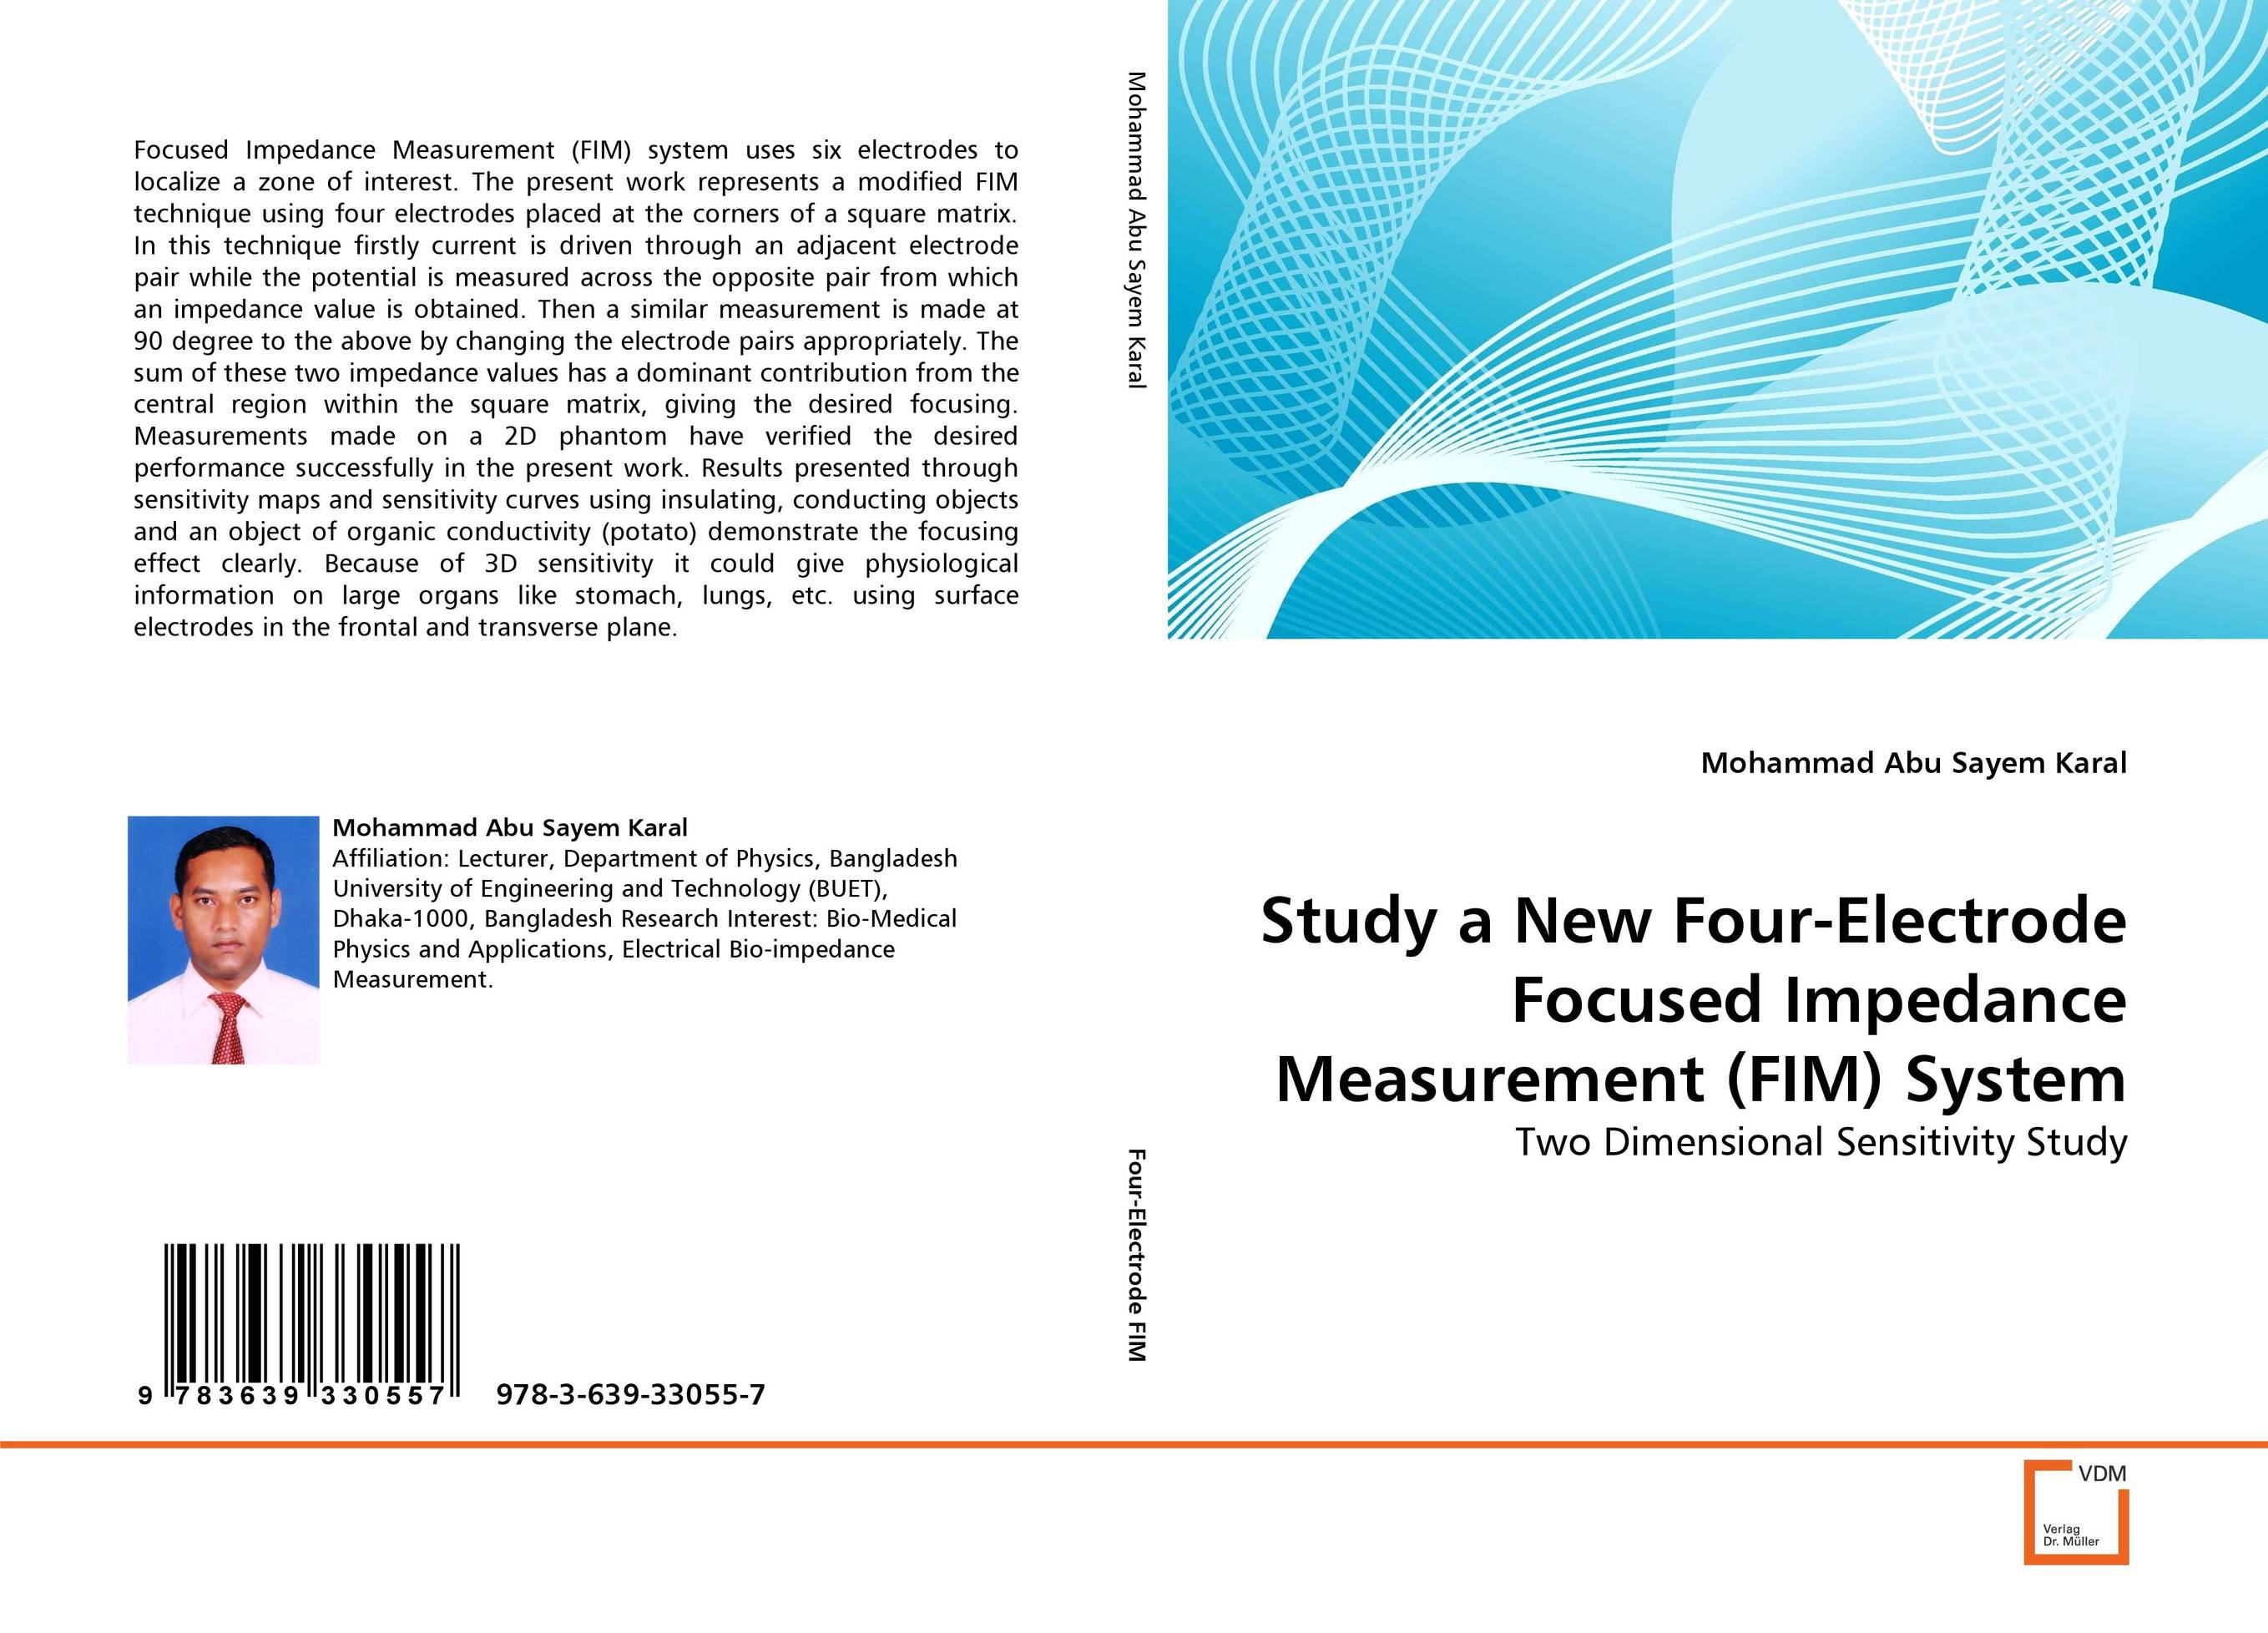 Study a New Four-Electrode Focused Impedance Measurement (FIM) System application of conducting polymer electrodes in cell impedance sensing